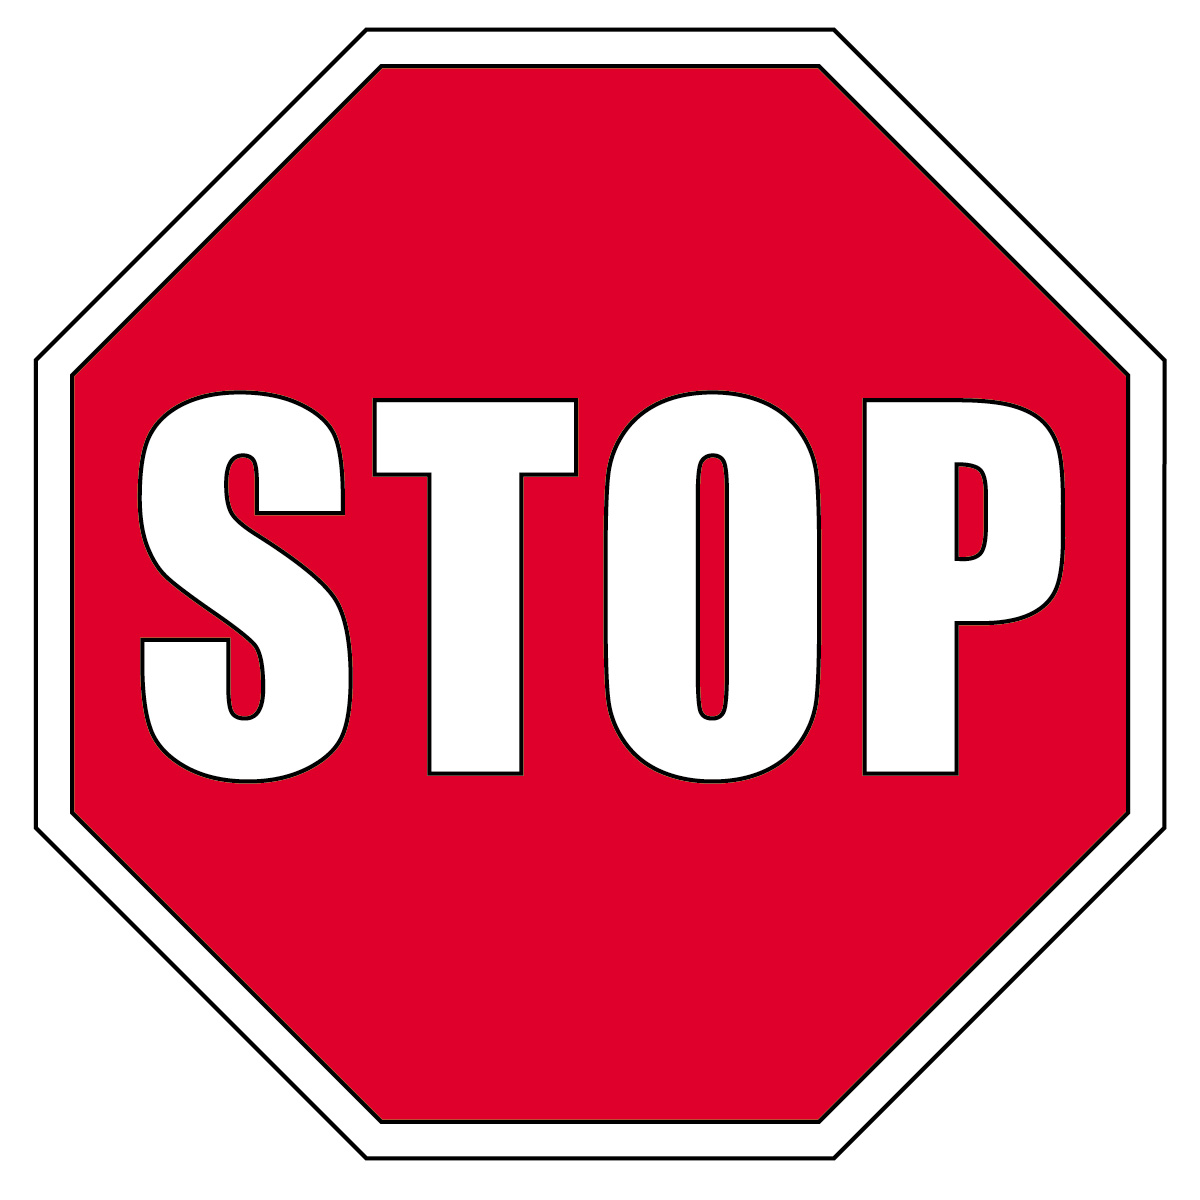 Image result for stop sign free image